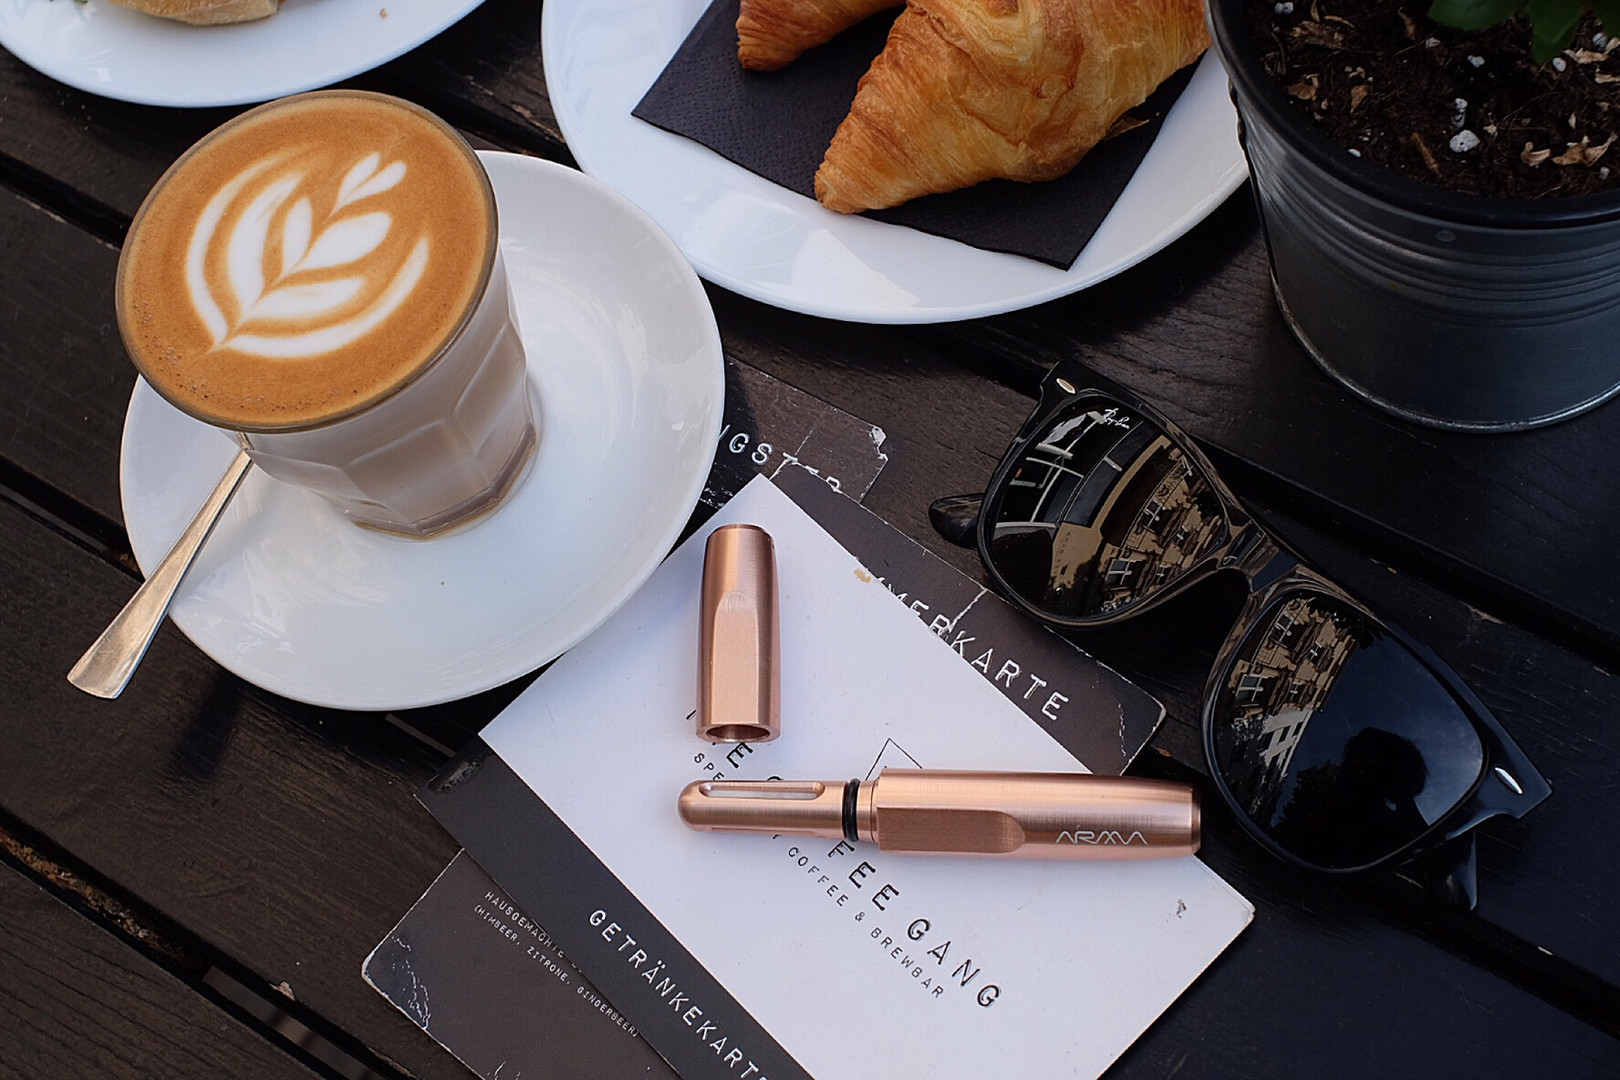 arma rose gold with coffee